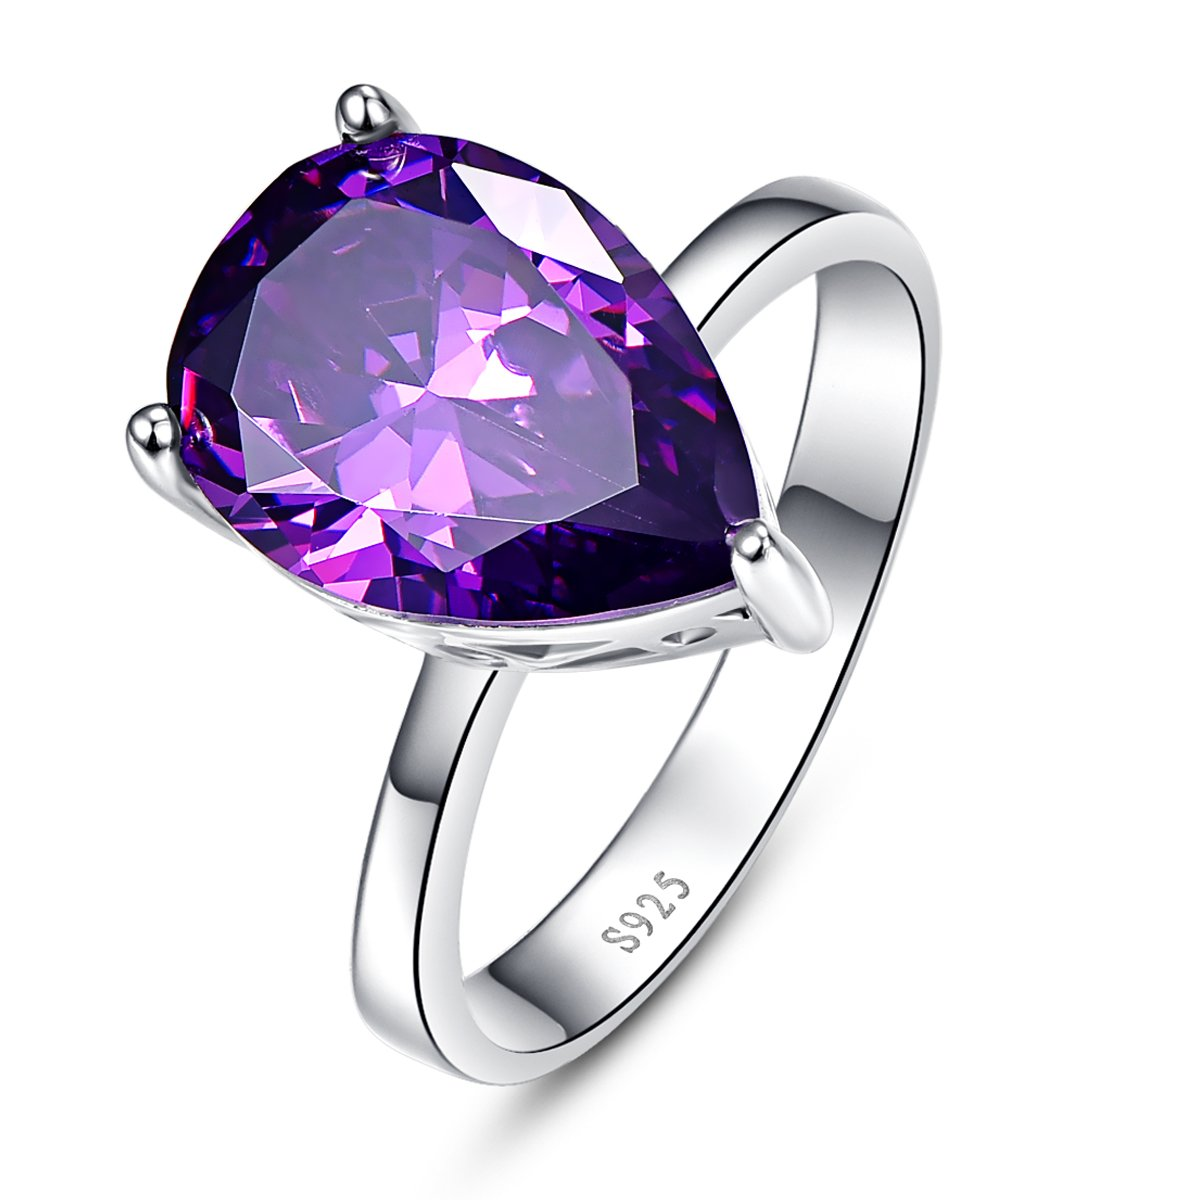 BONLAVIE 925 Sterling Silver Pear Cut Created Amethyst Promise Engagement Wedding Ring for Women Size 7